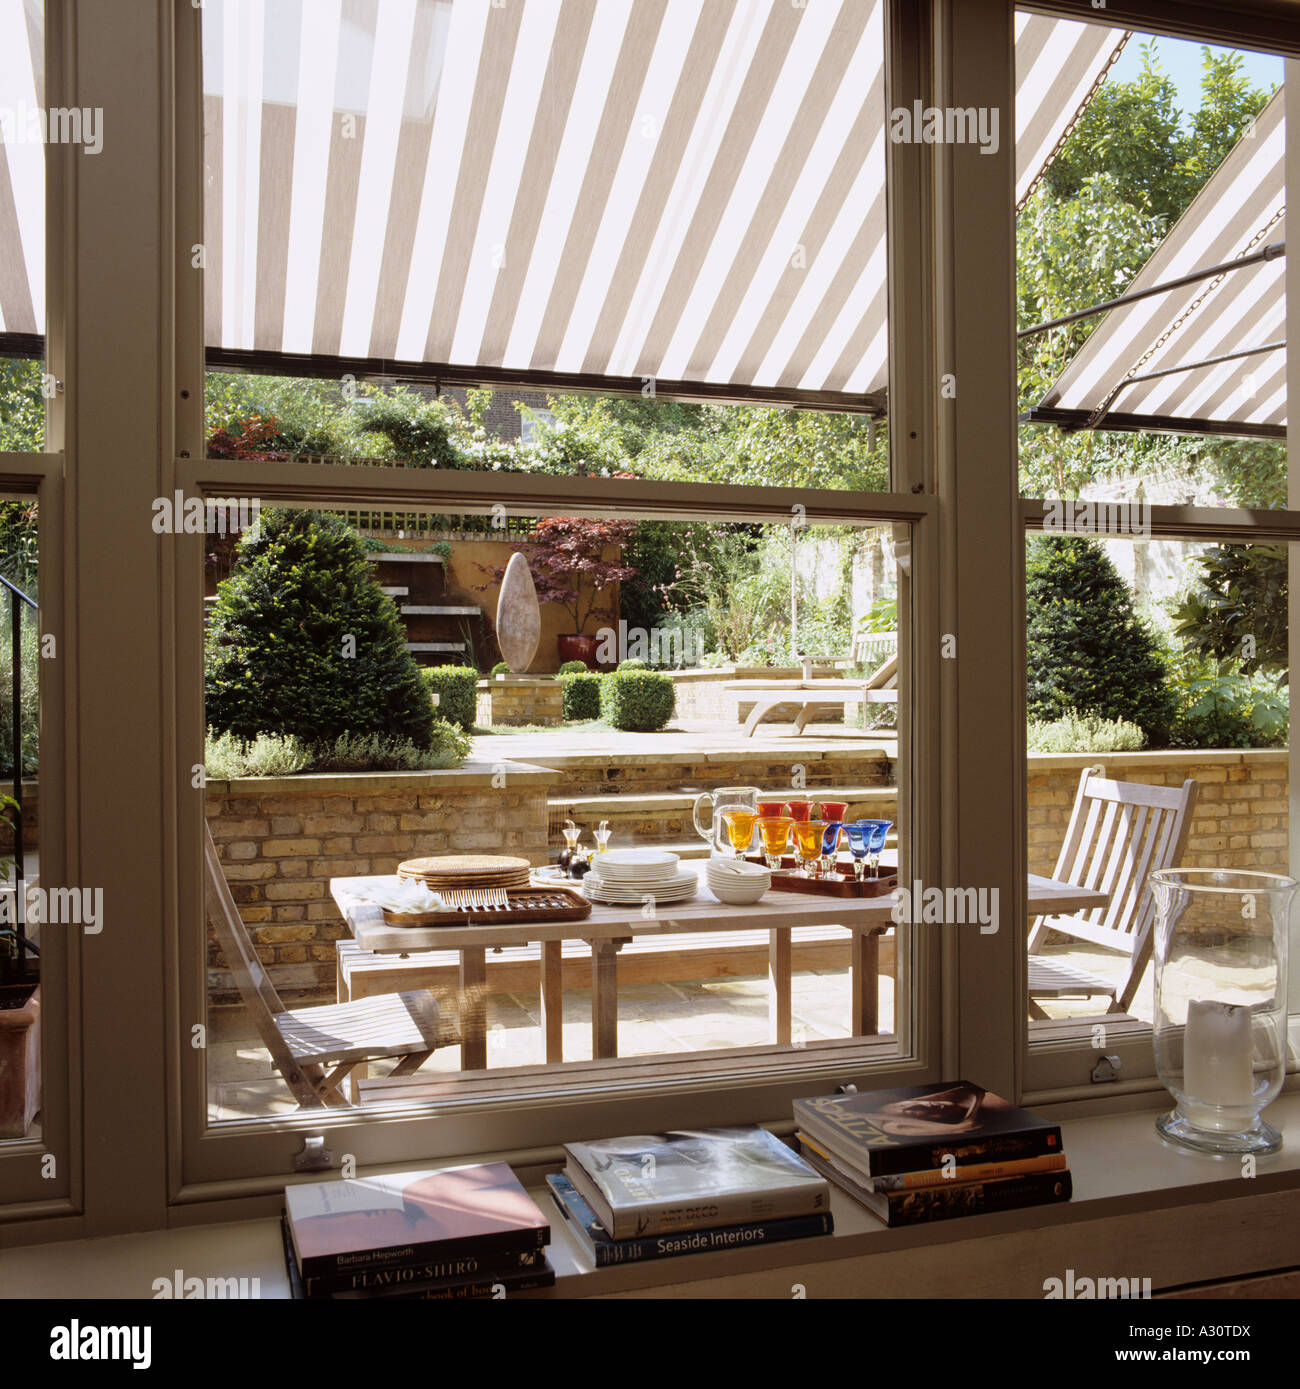 View Through Window To Garden Patio With Striped Awning